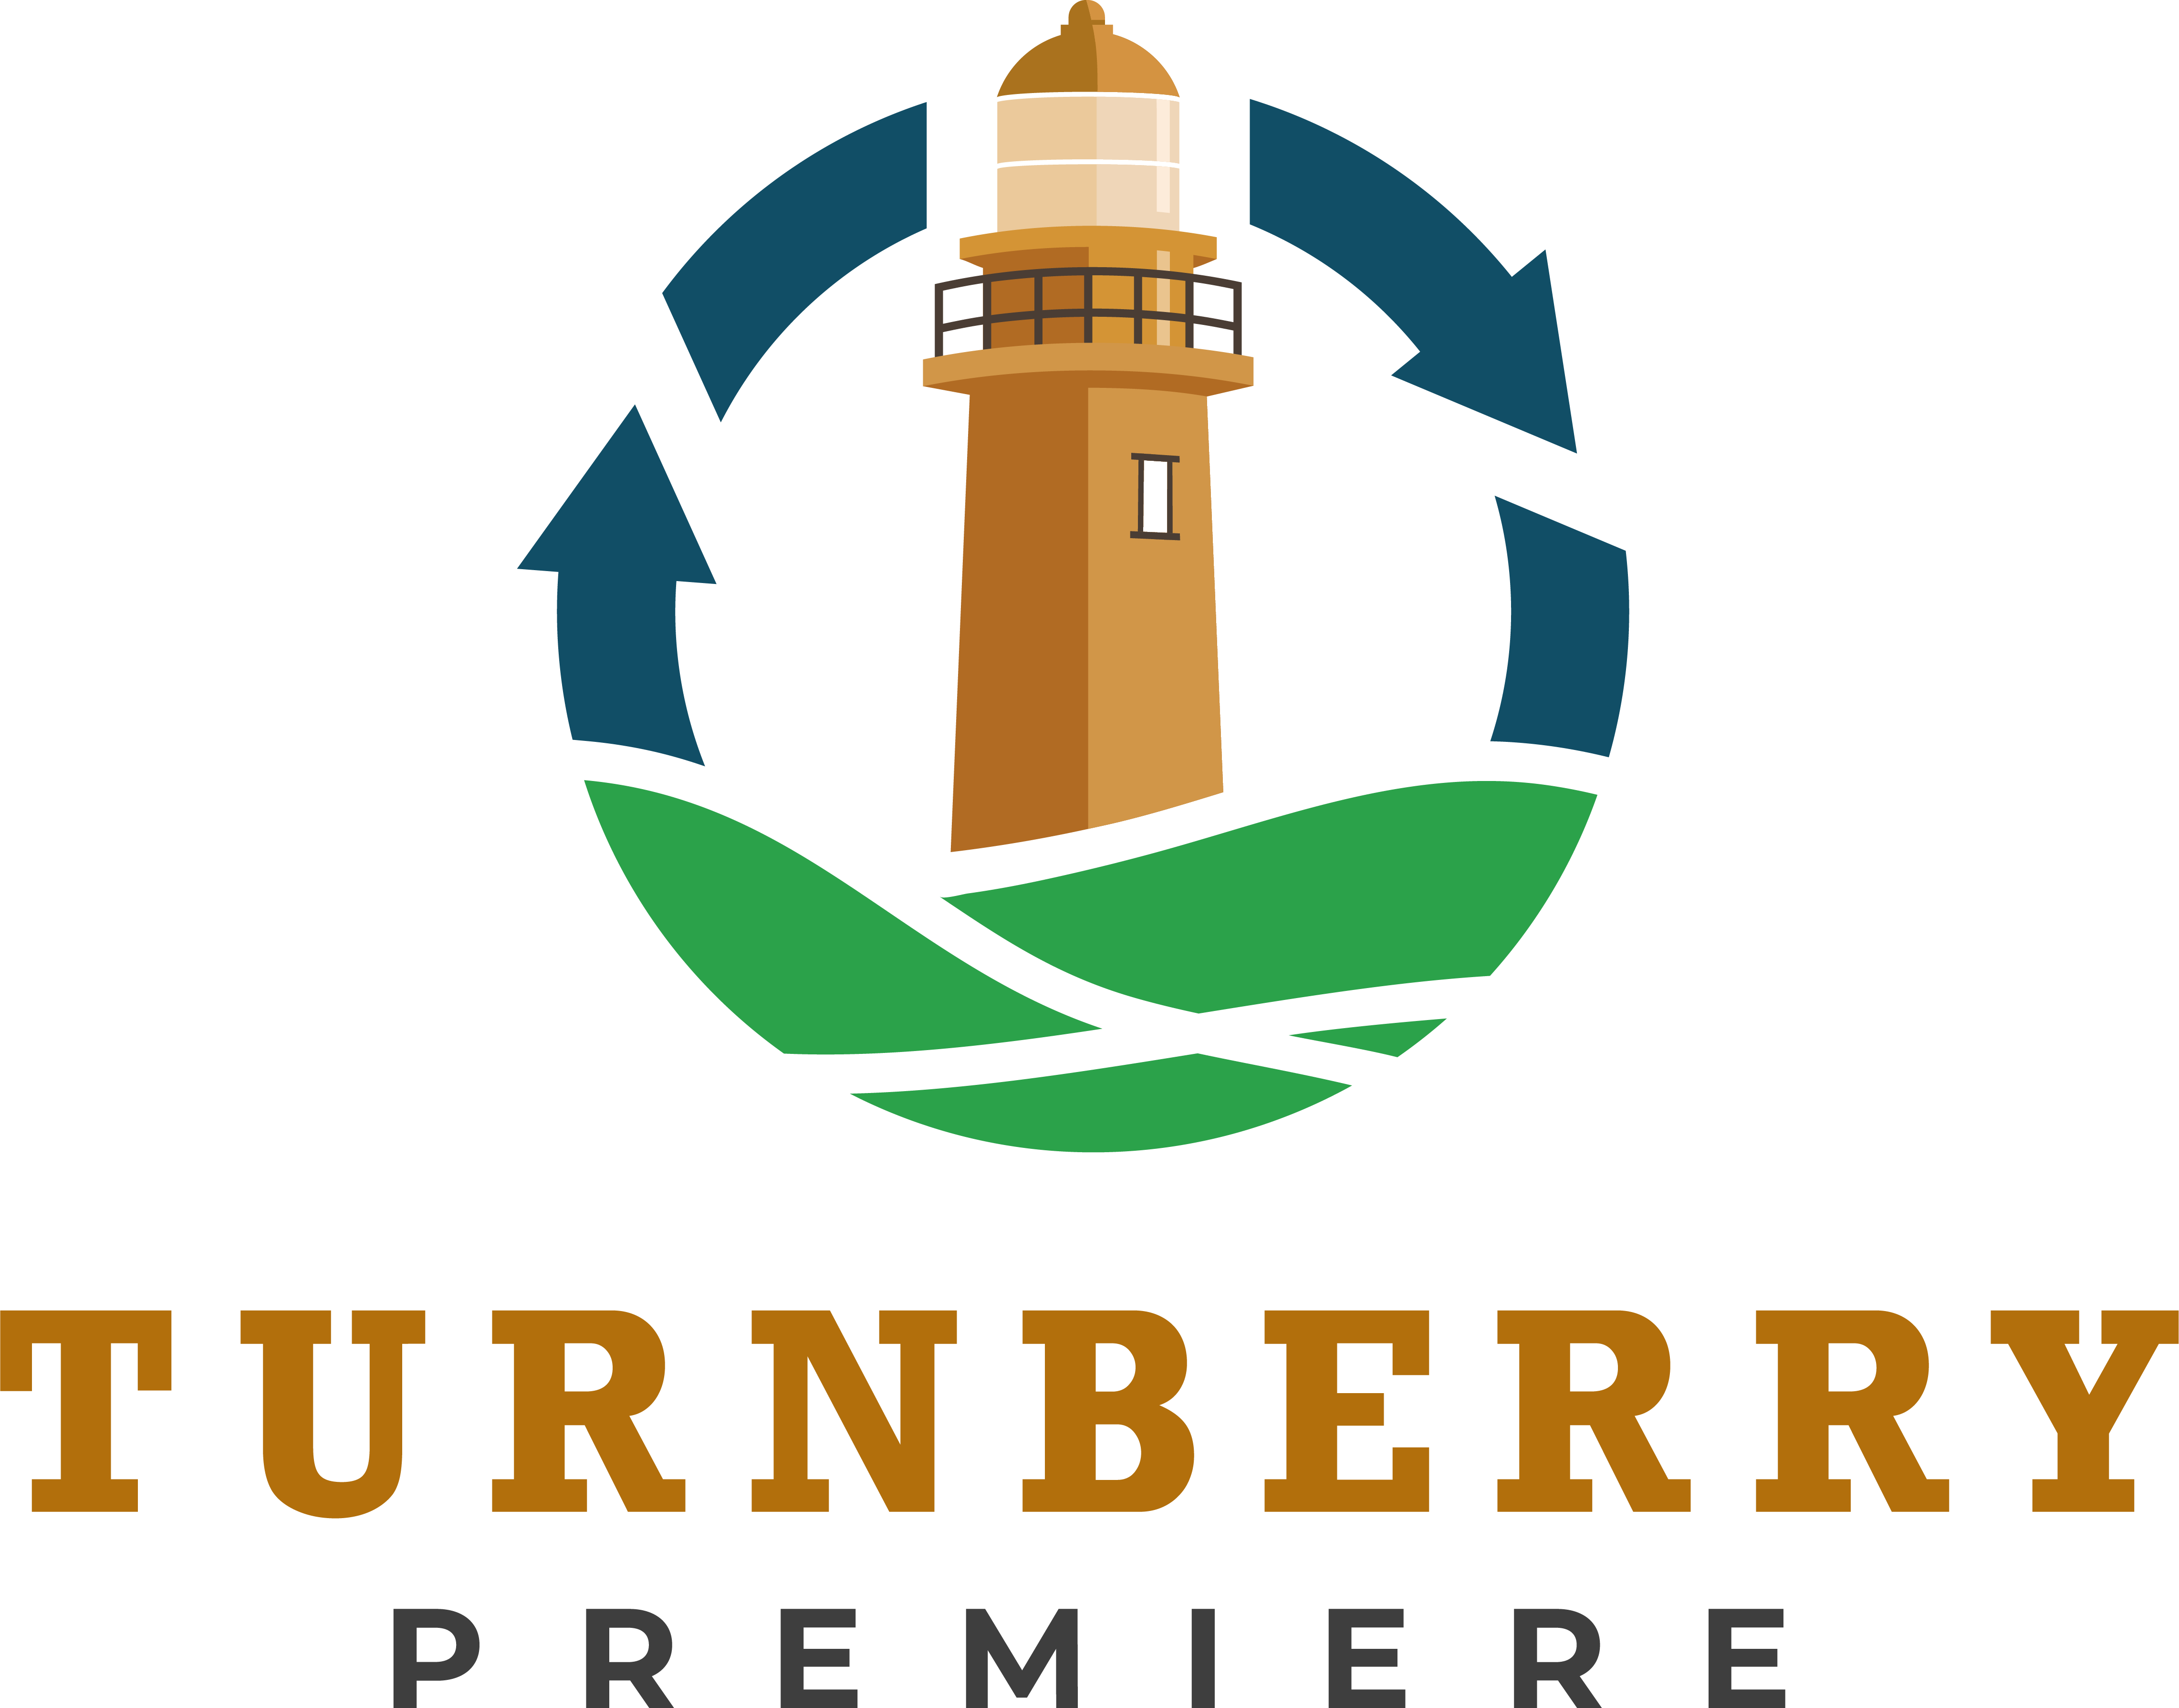 Turnberry Premiere